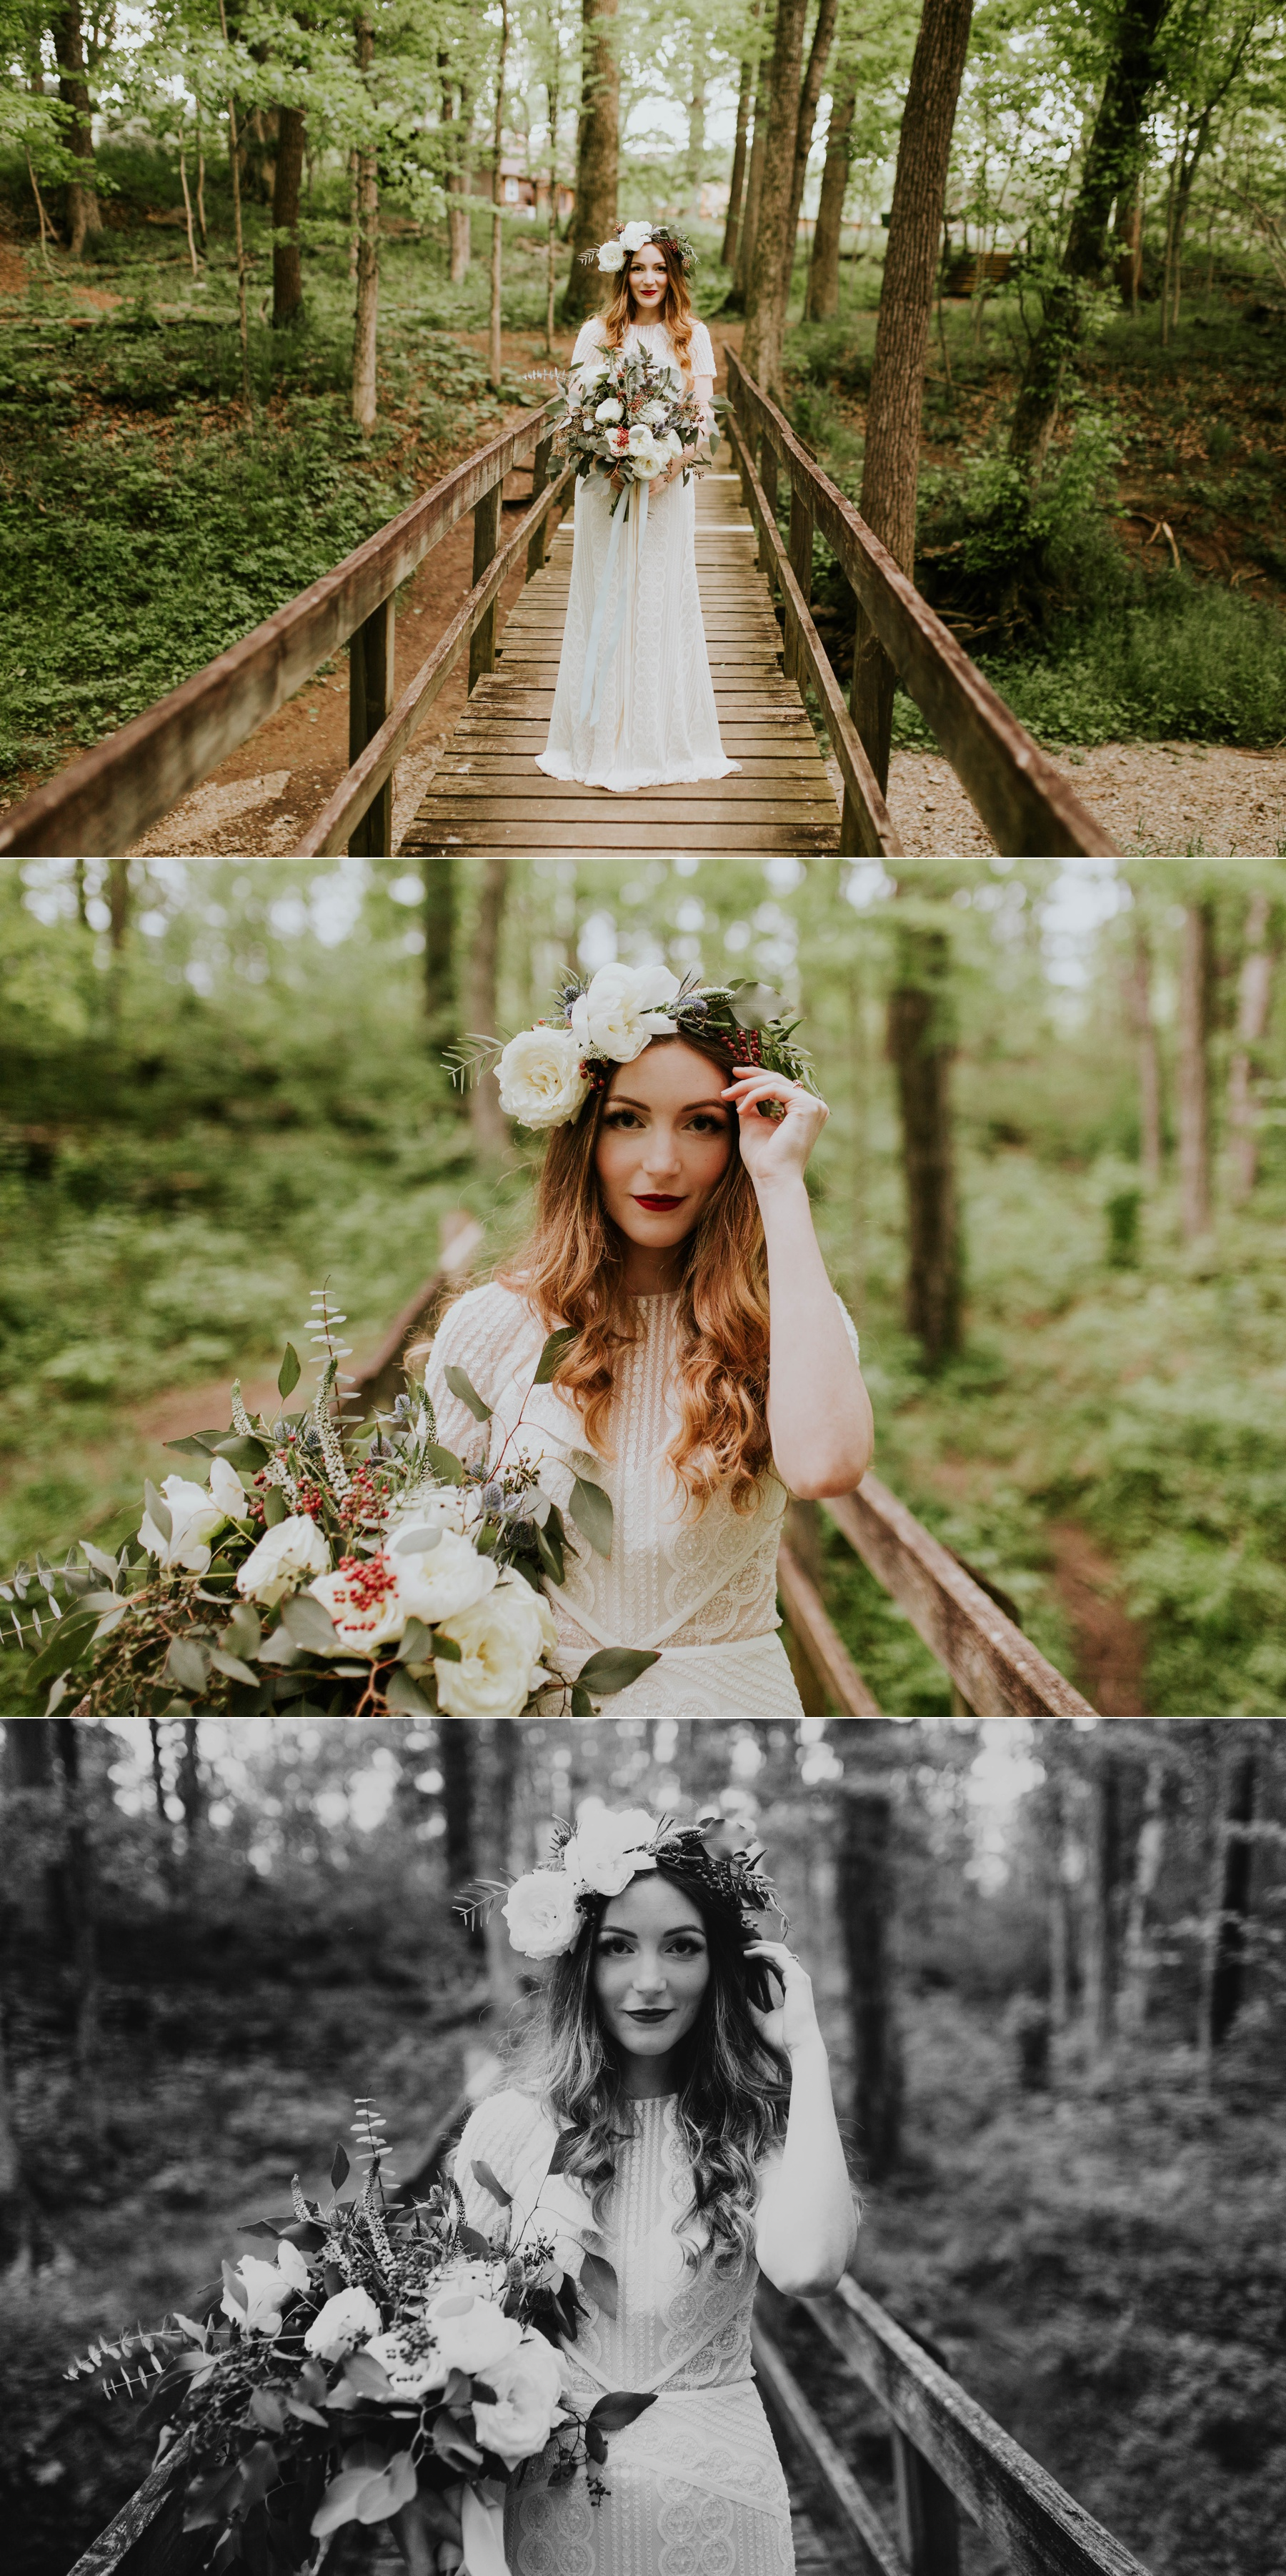 ThroughVictoriasLens_CedarsOfLebanon_Bridals10.jpg